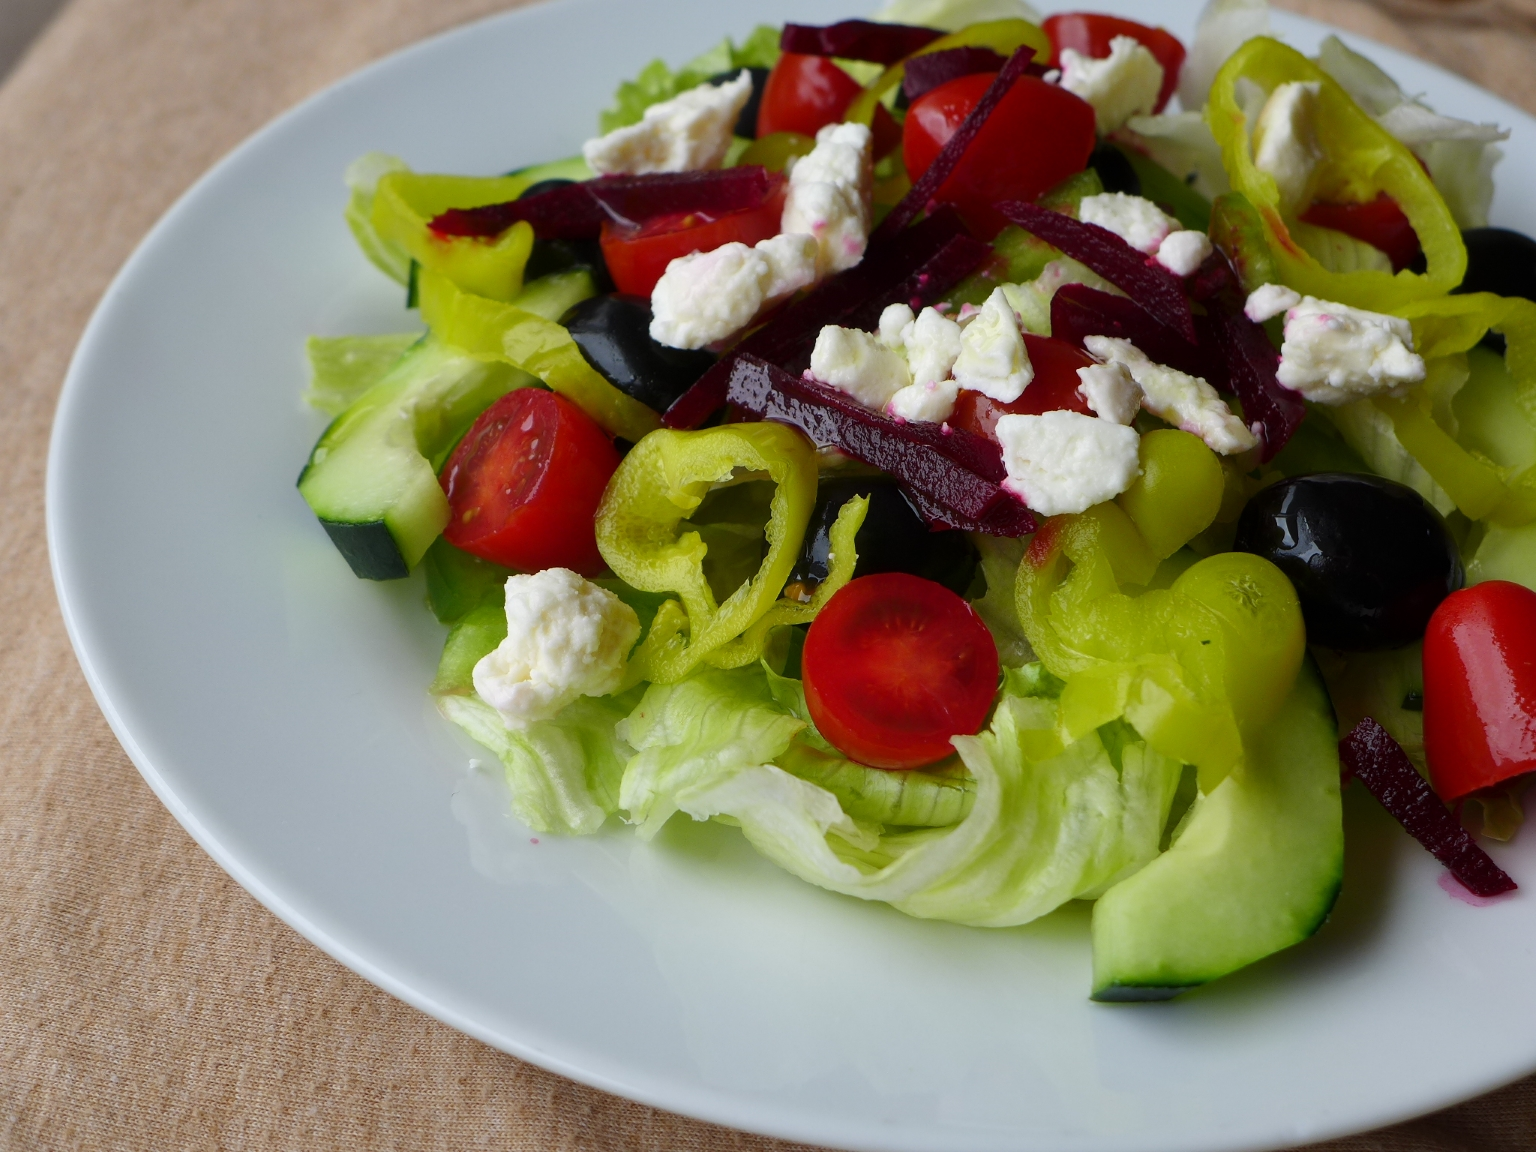 Greek Salad with Beets